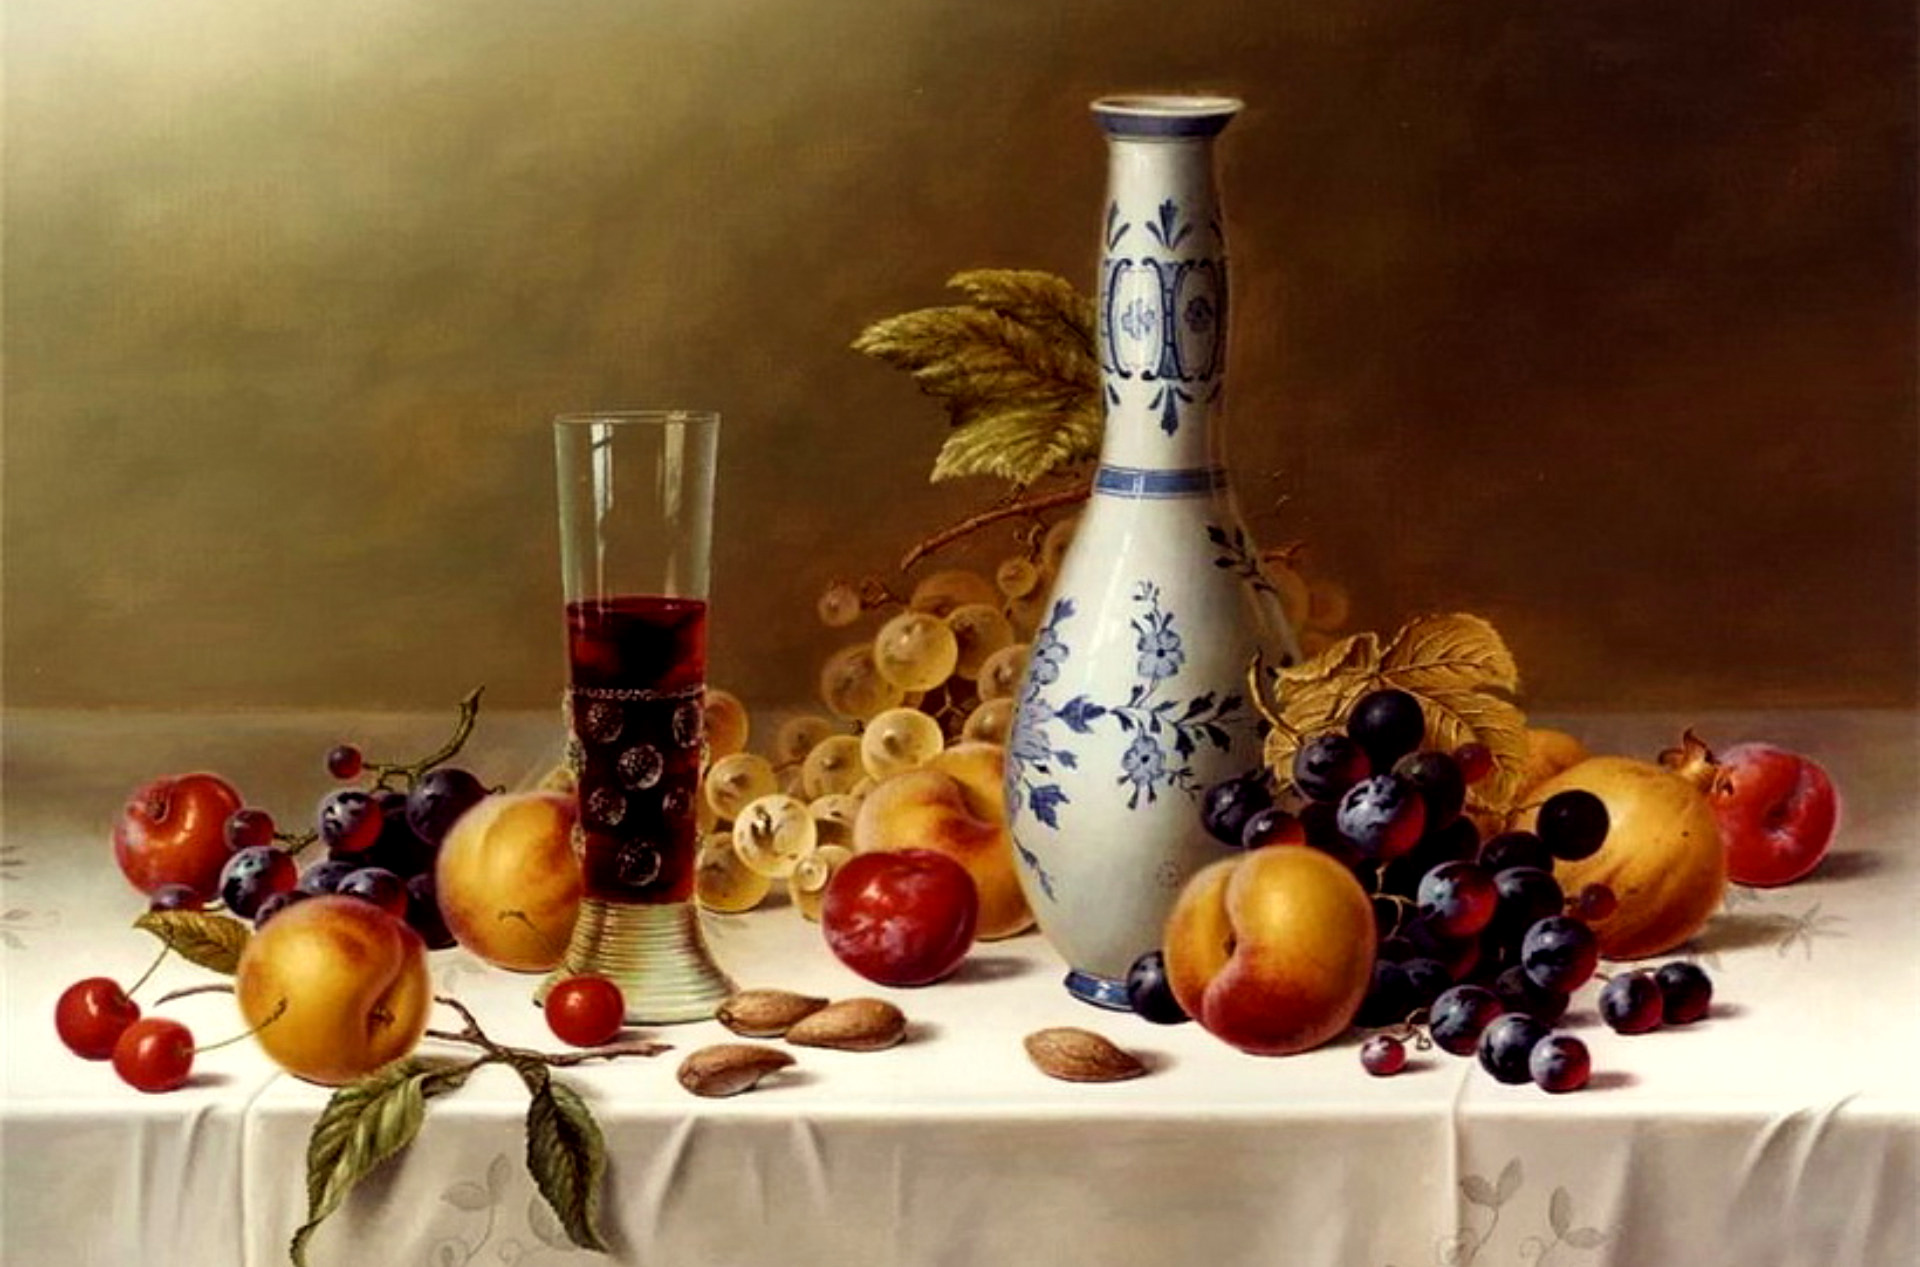 Wine, chalice, decanter, fruit, still life, table, tablecloth, wine